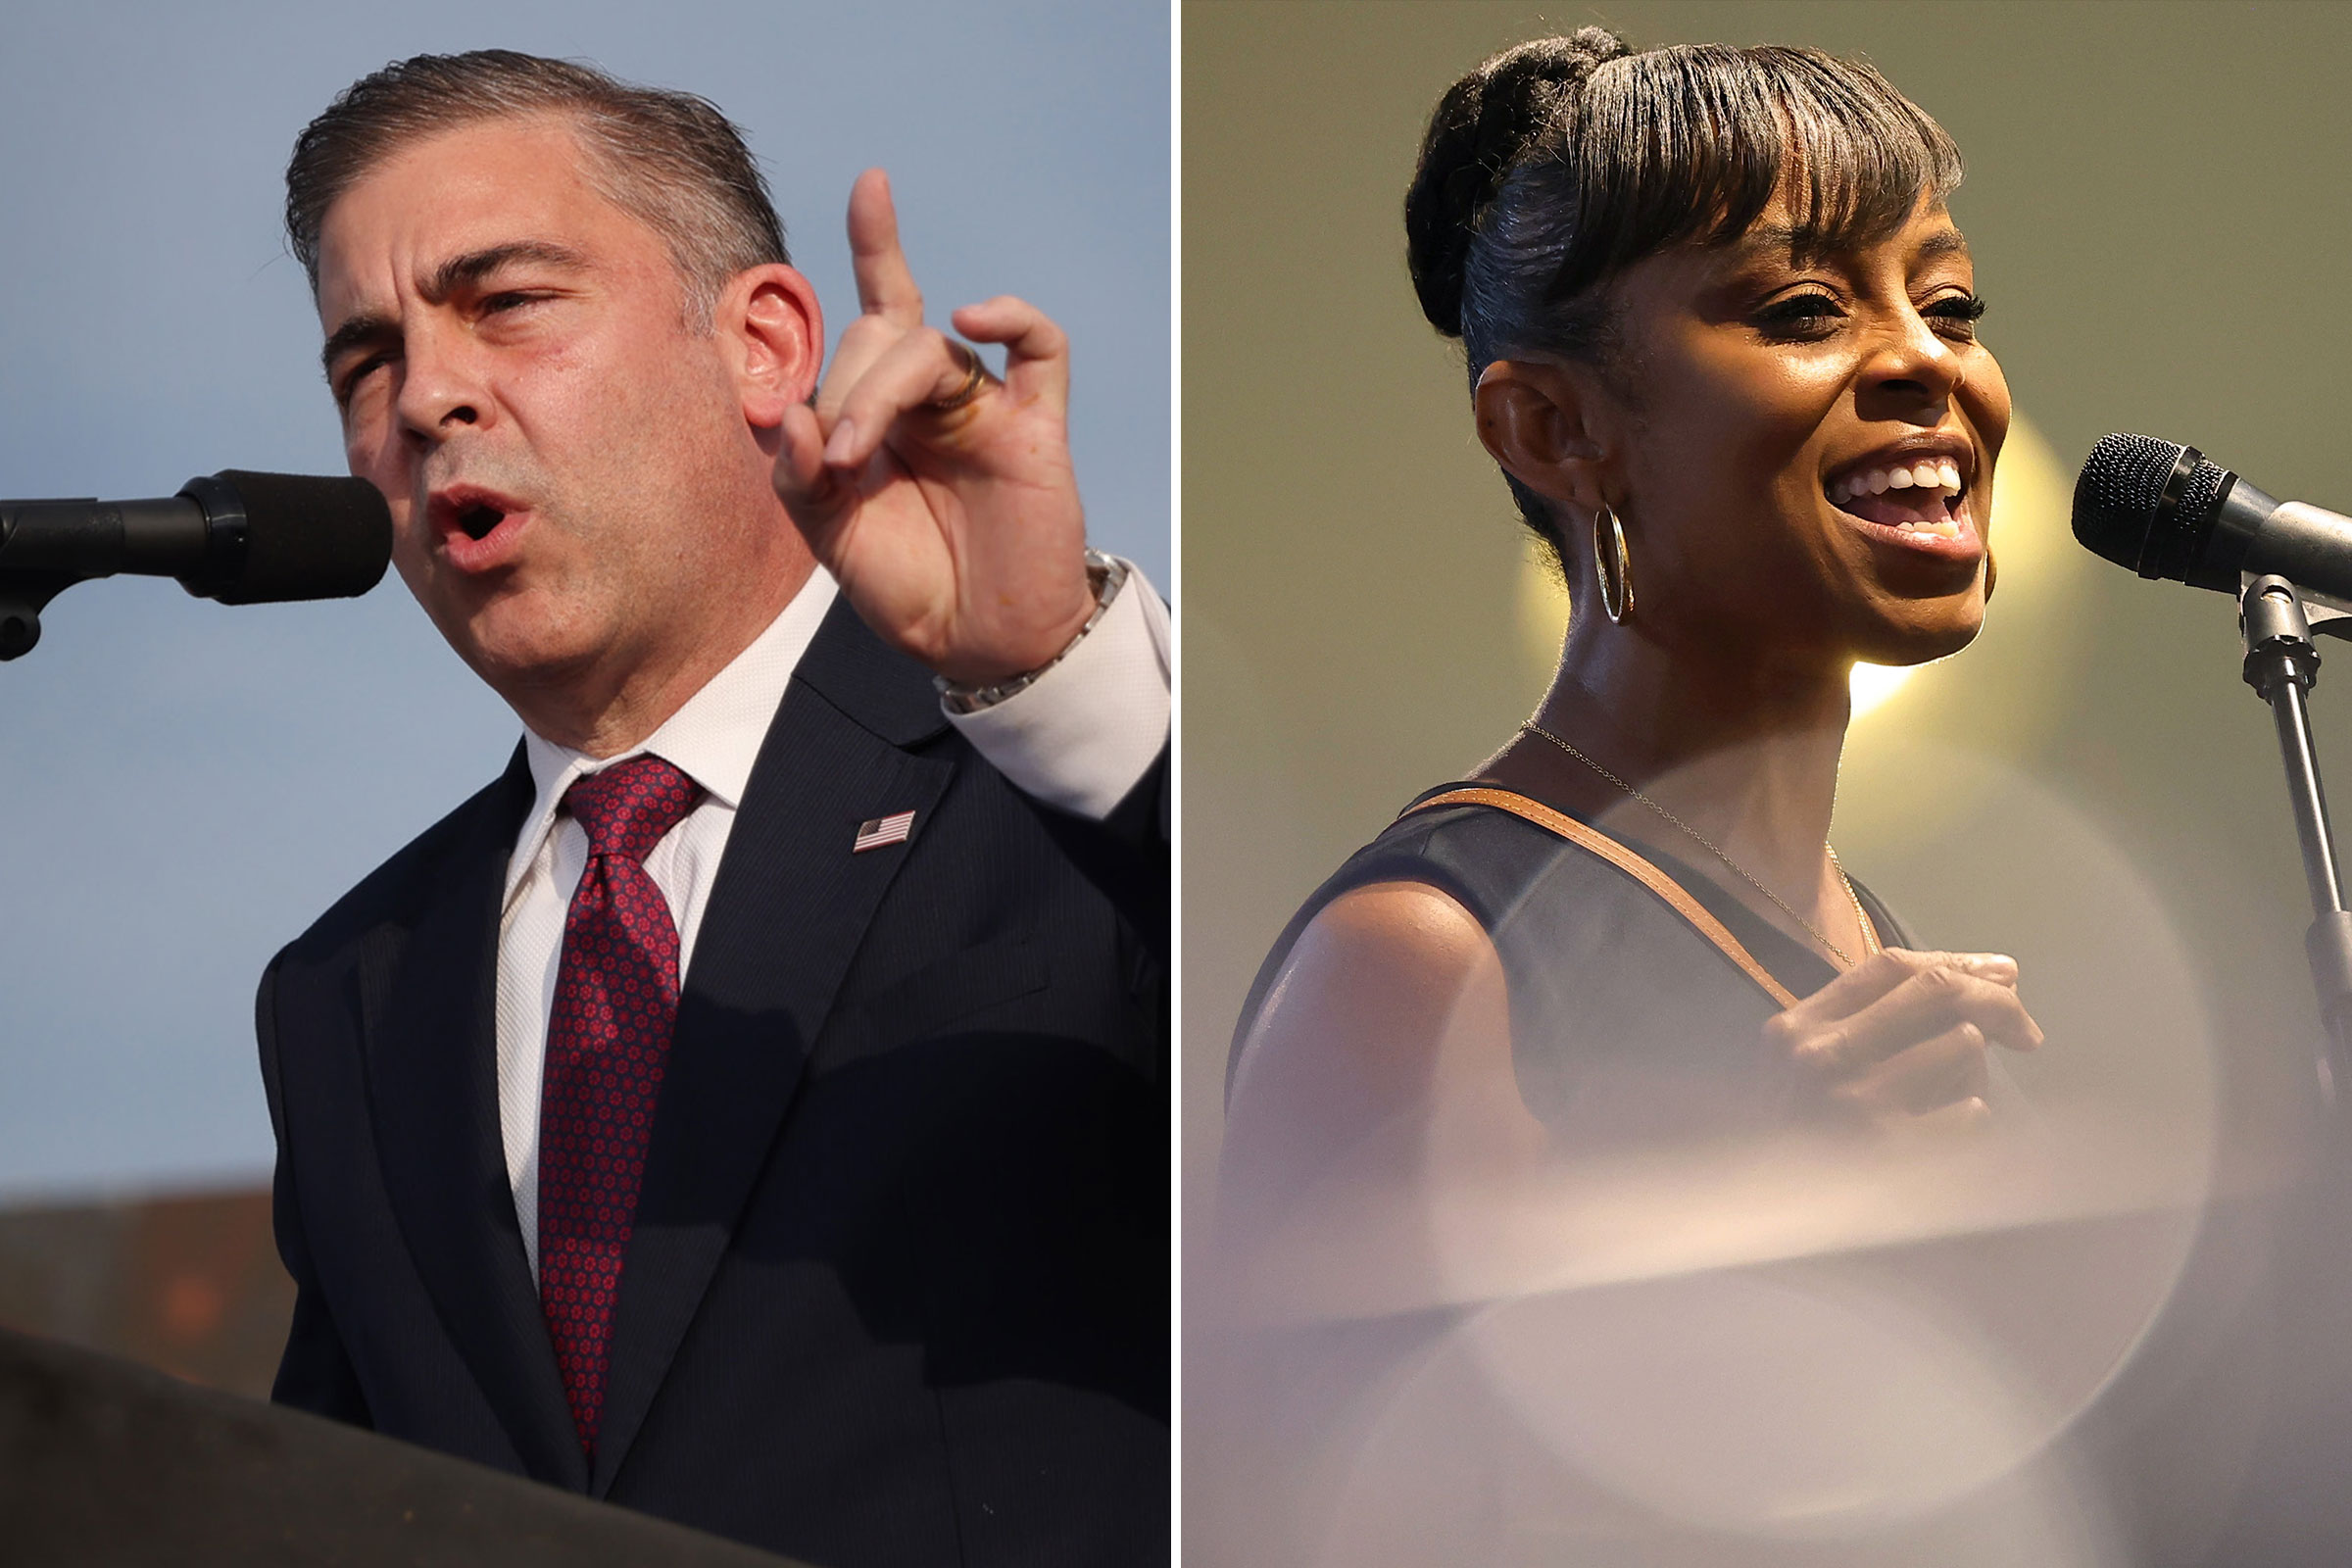 Mike Carey speaks at a rally hosted by former President Donald Trump after receiving his endorsement on June 26, 2021 in Wellington, Ohio; Shontel Brown speaks during a Souls to the Polls rally at Sanctuary Baptist Church on Aug. 1, 2021 in Cleveland, Ohio